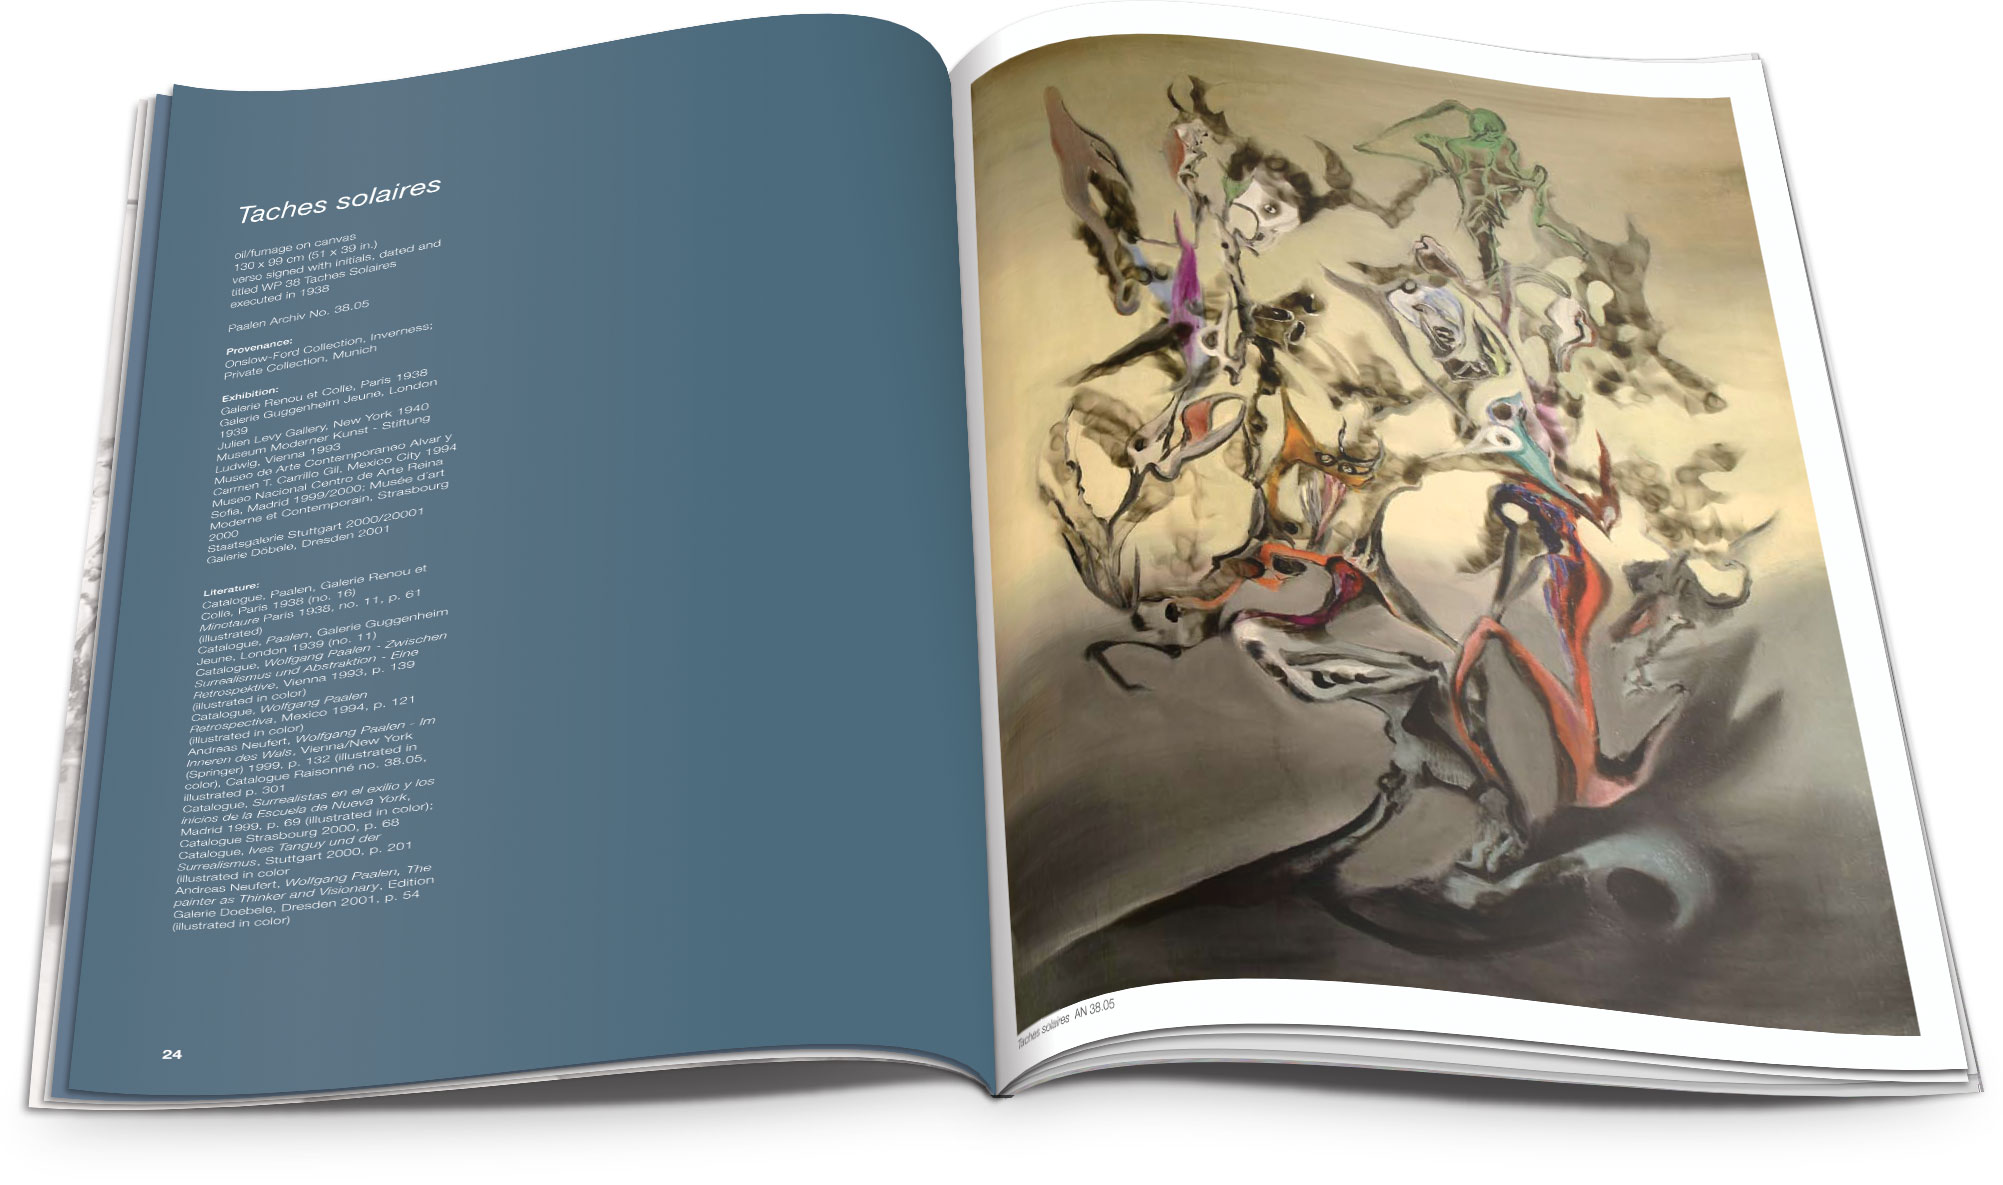 Project: Exhibition catalog design for an art gallery